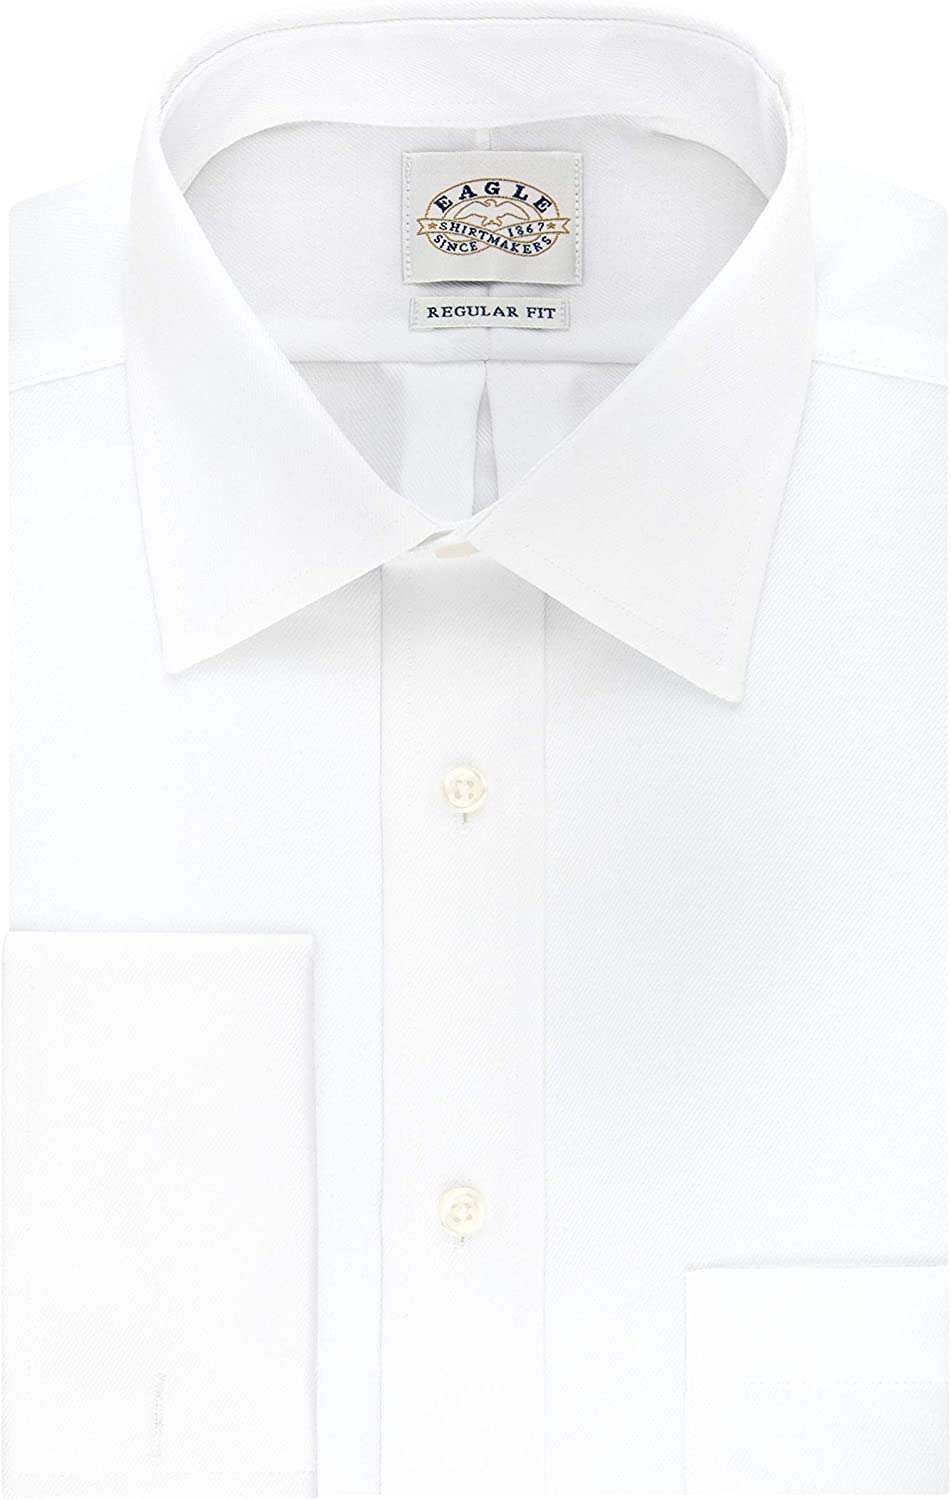 Eagle Men's Dress Shirt Regular Fit Non Iron Solid French Cuff